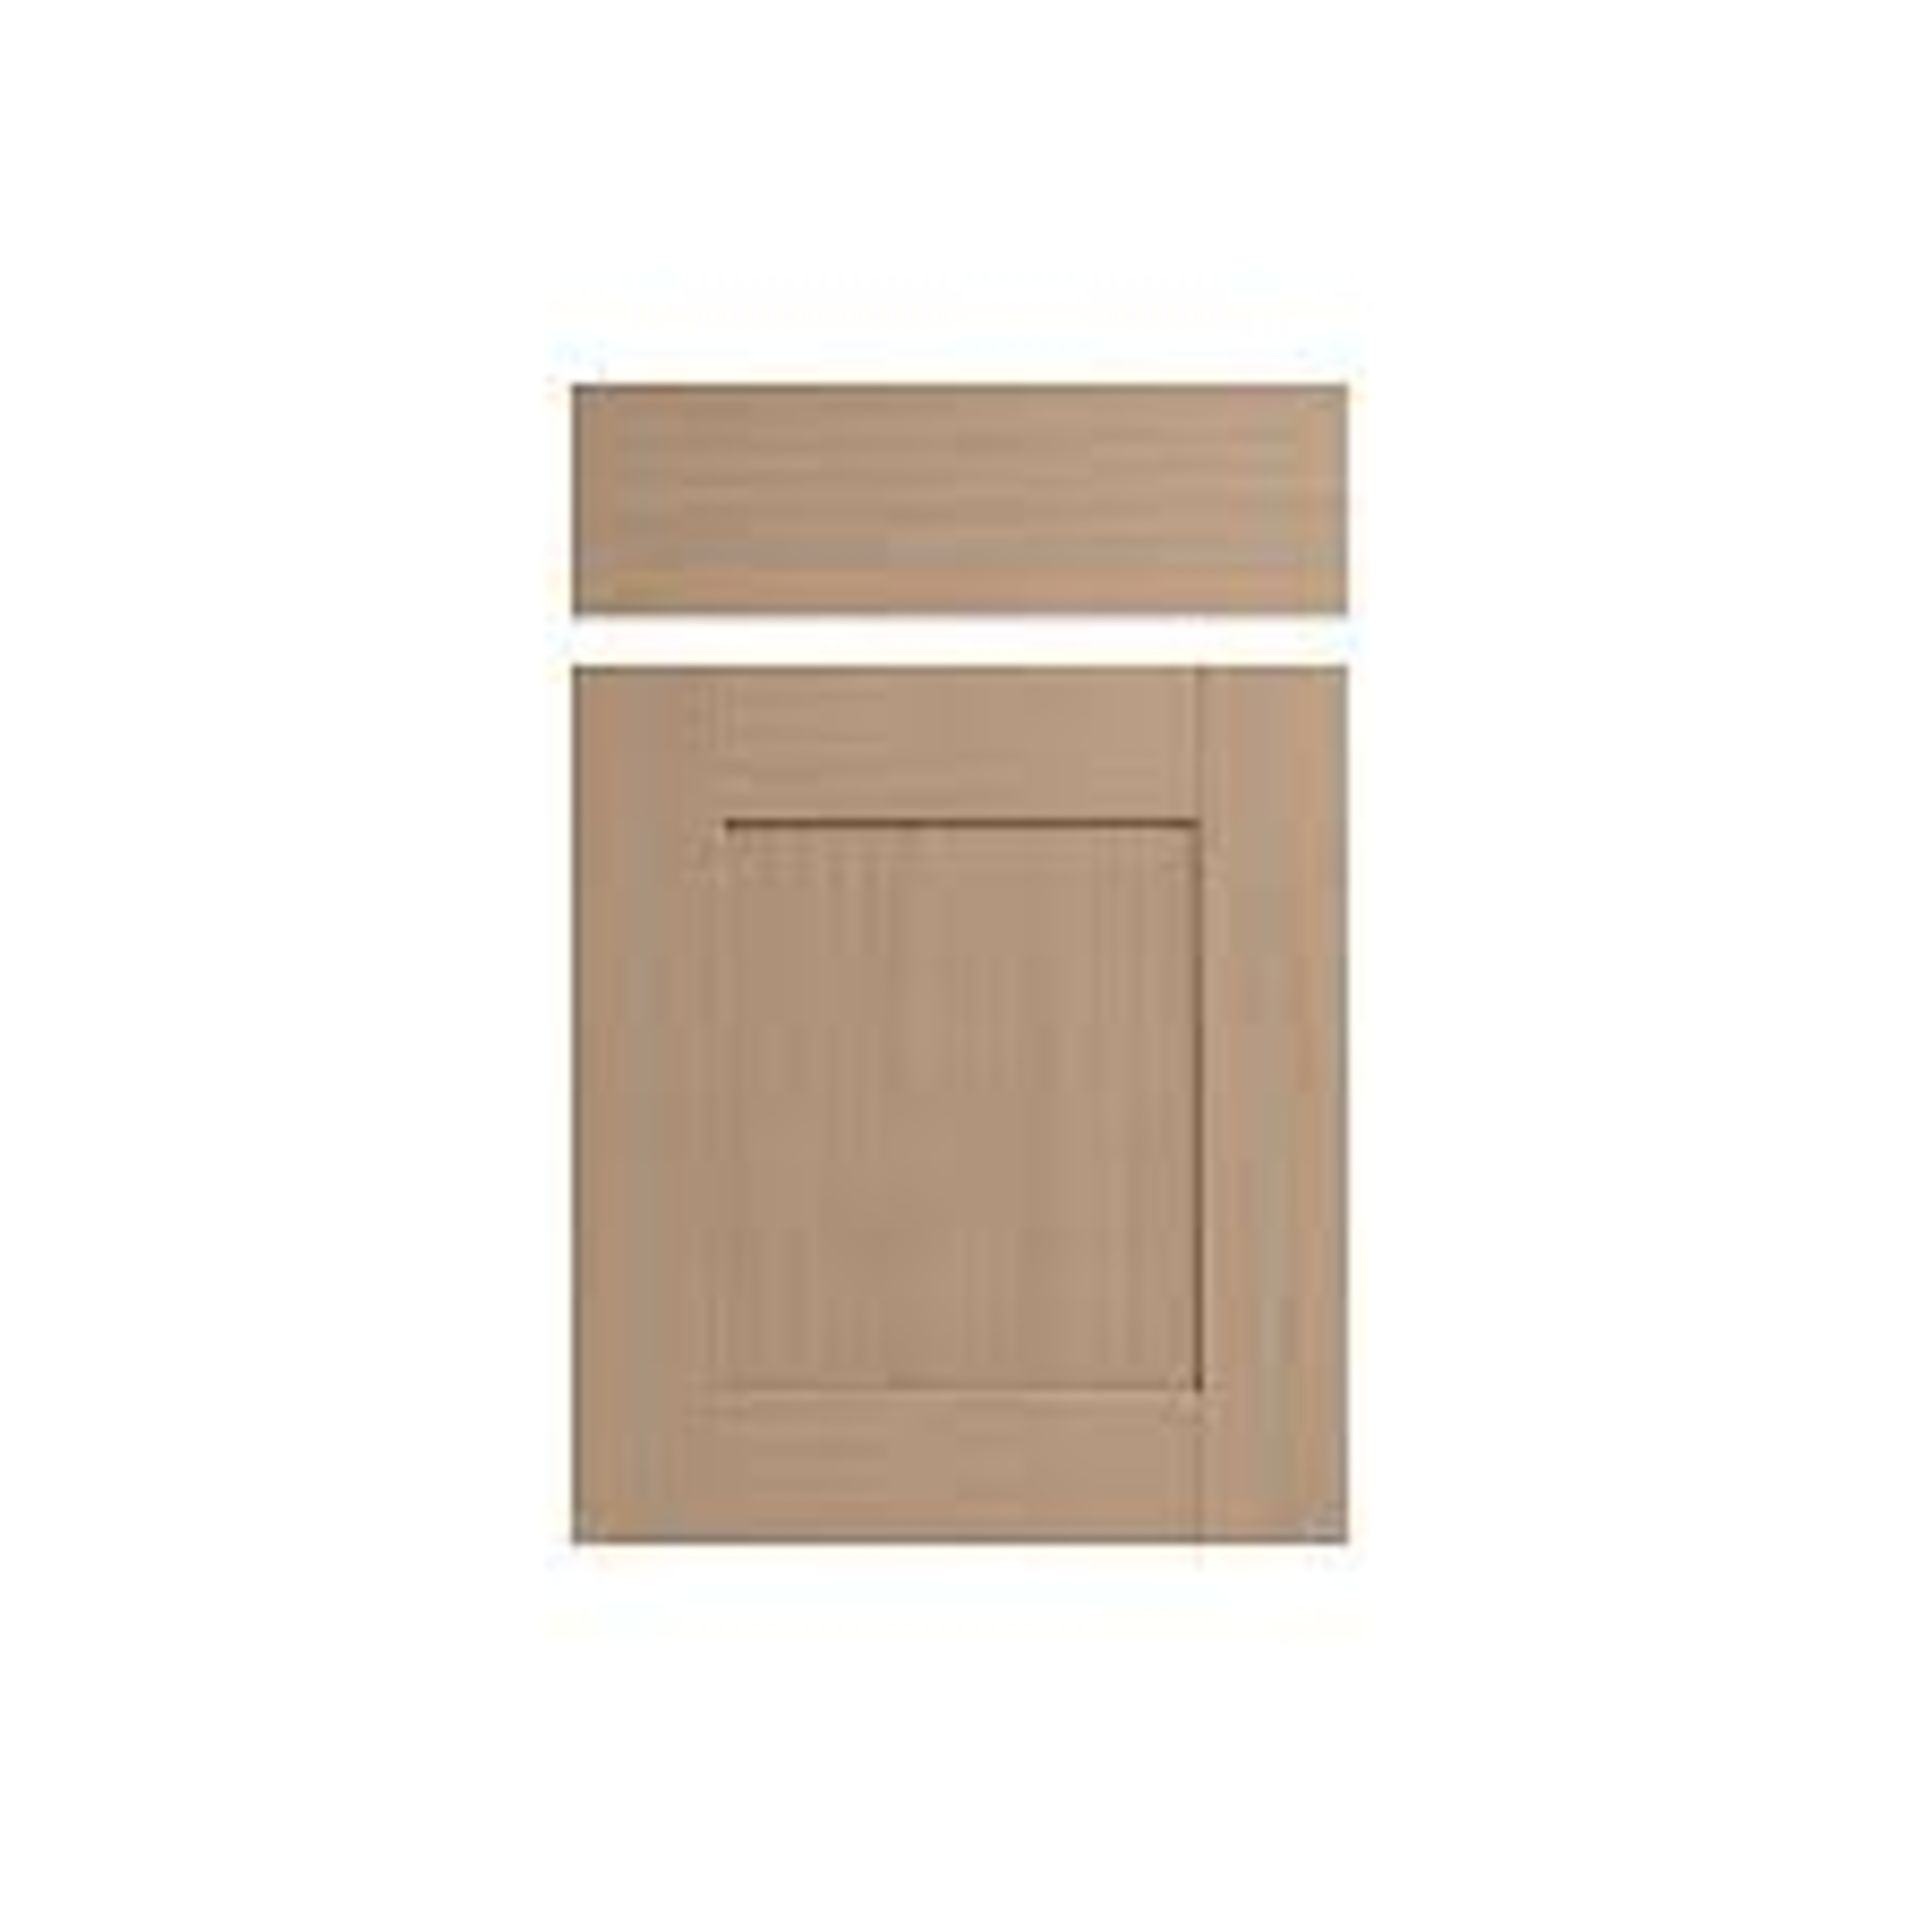 Circa 4,559 items of Kitchen Goods from the following ranges: Gloss White, Westleigh Textured Oak - Image 3 of 21